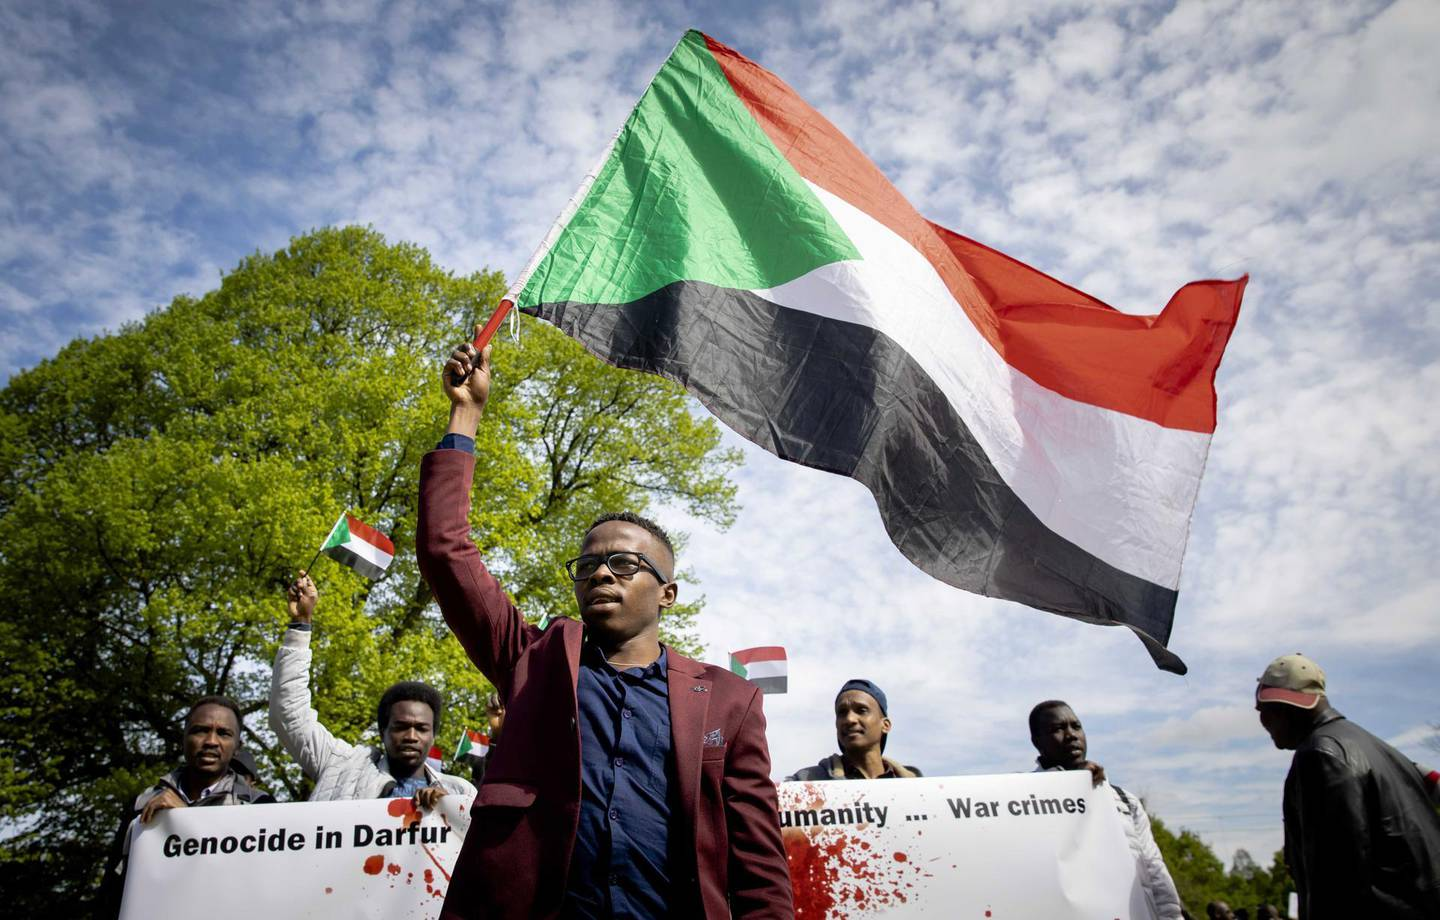 epa07529787 Sudanese refugees demonstrate at the Central Station in The Hague, The Netherlands, 26 April 2019. The protesters demanded that ousted Sudanese President Omar Al-Bashir should be trialed at the International Criminal Court (ICC).  EPA/BART MAAT